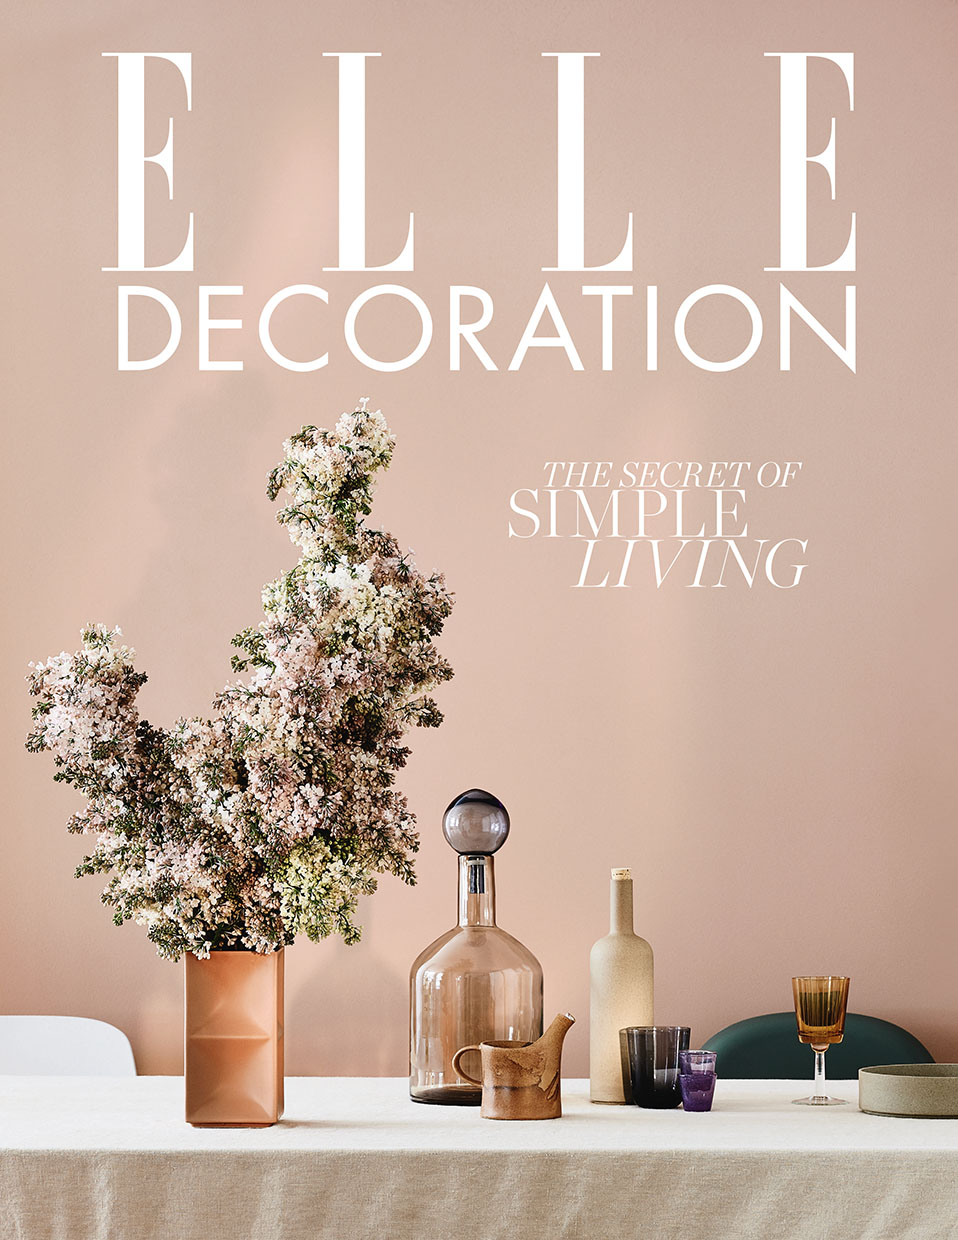 Elle Decoration May 2018 subscriber front cover styled by interior stylist Sania Pell. Photography by Jake Curtis.